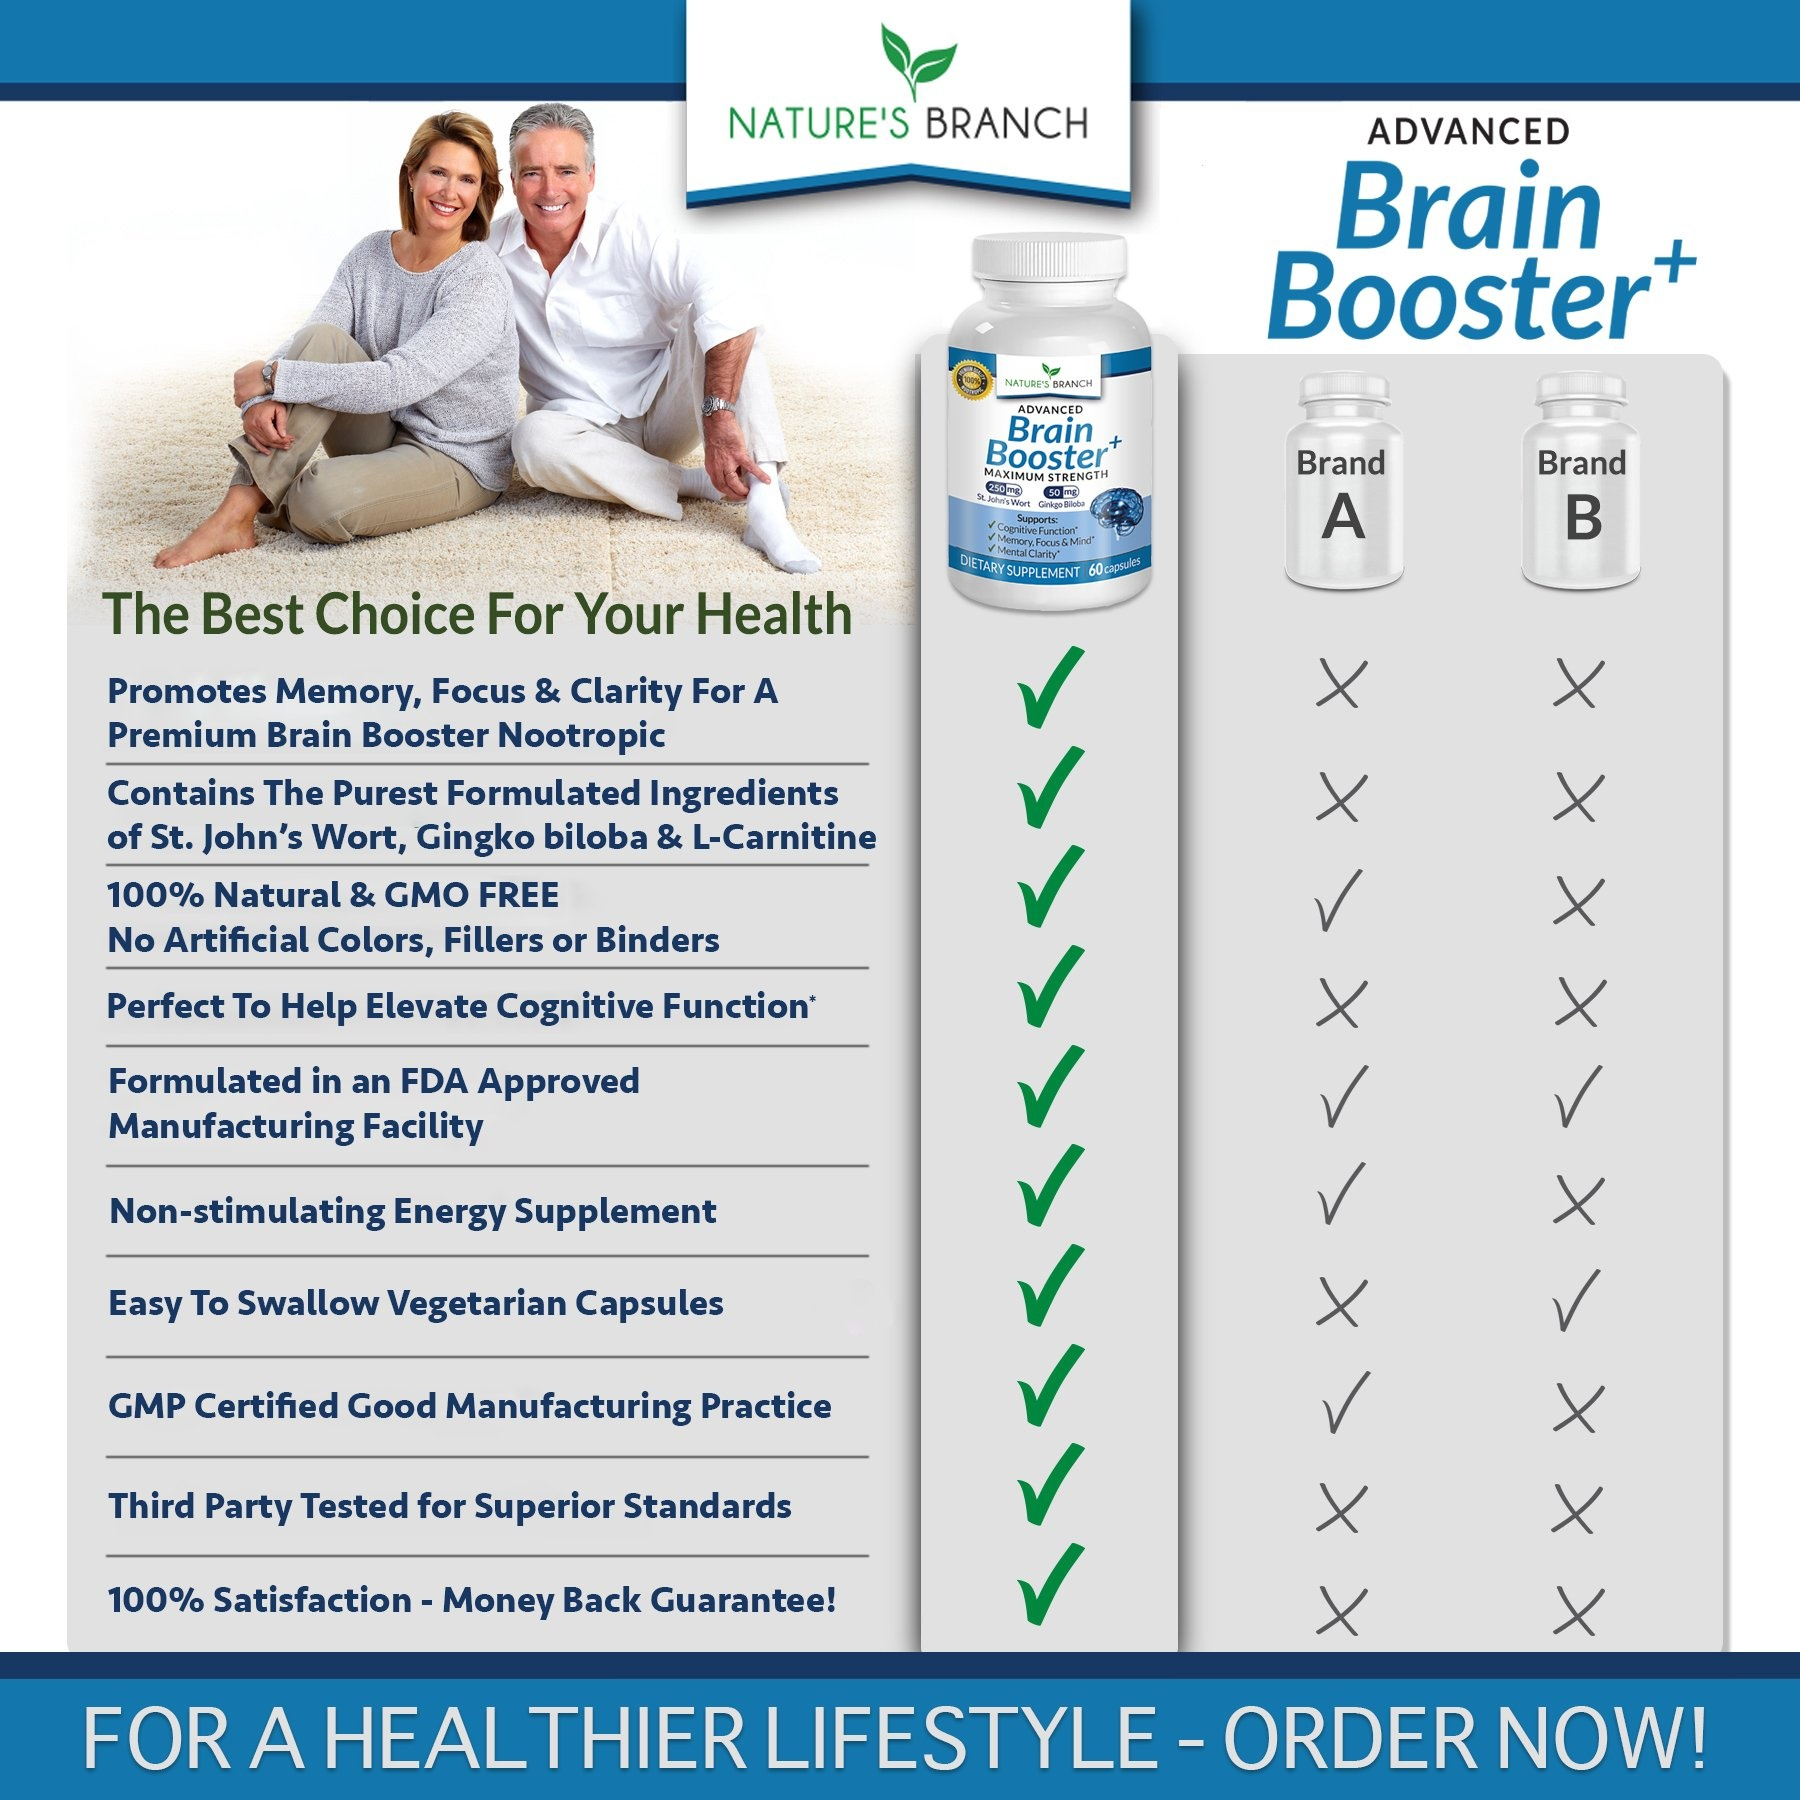 ADVANCED Brain Support Supplement Focus Clarity & Memory Booster PLUS FREE EBOOK Energy Enhancer Ginkgo Biloba St Johns Wort Vitamins Nootropic Power Boost 60 Brain Health Function Pills